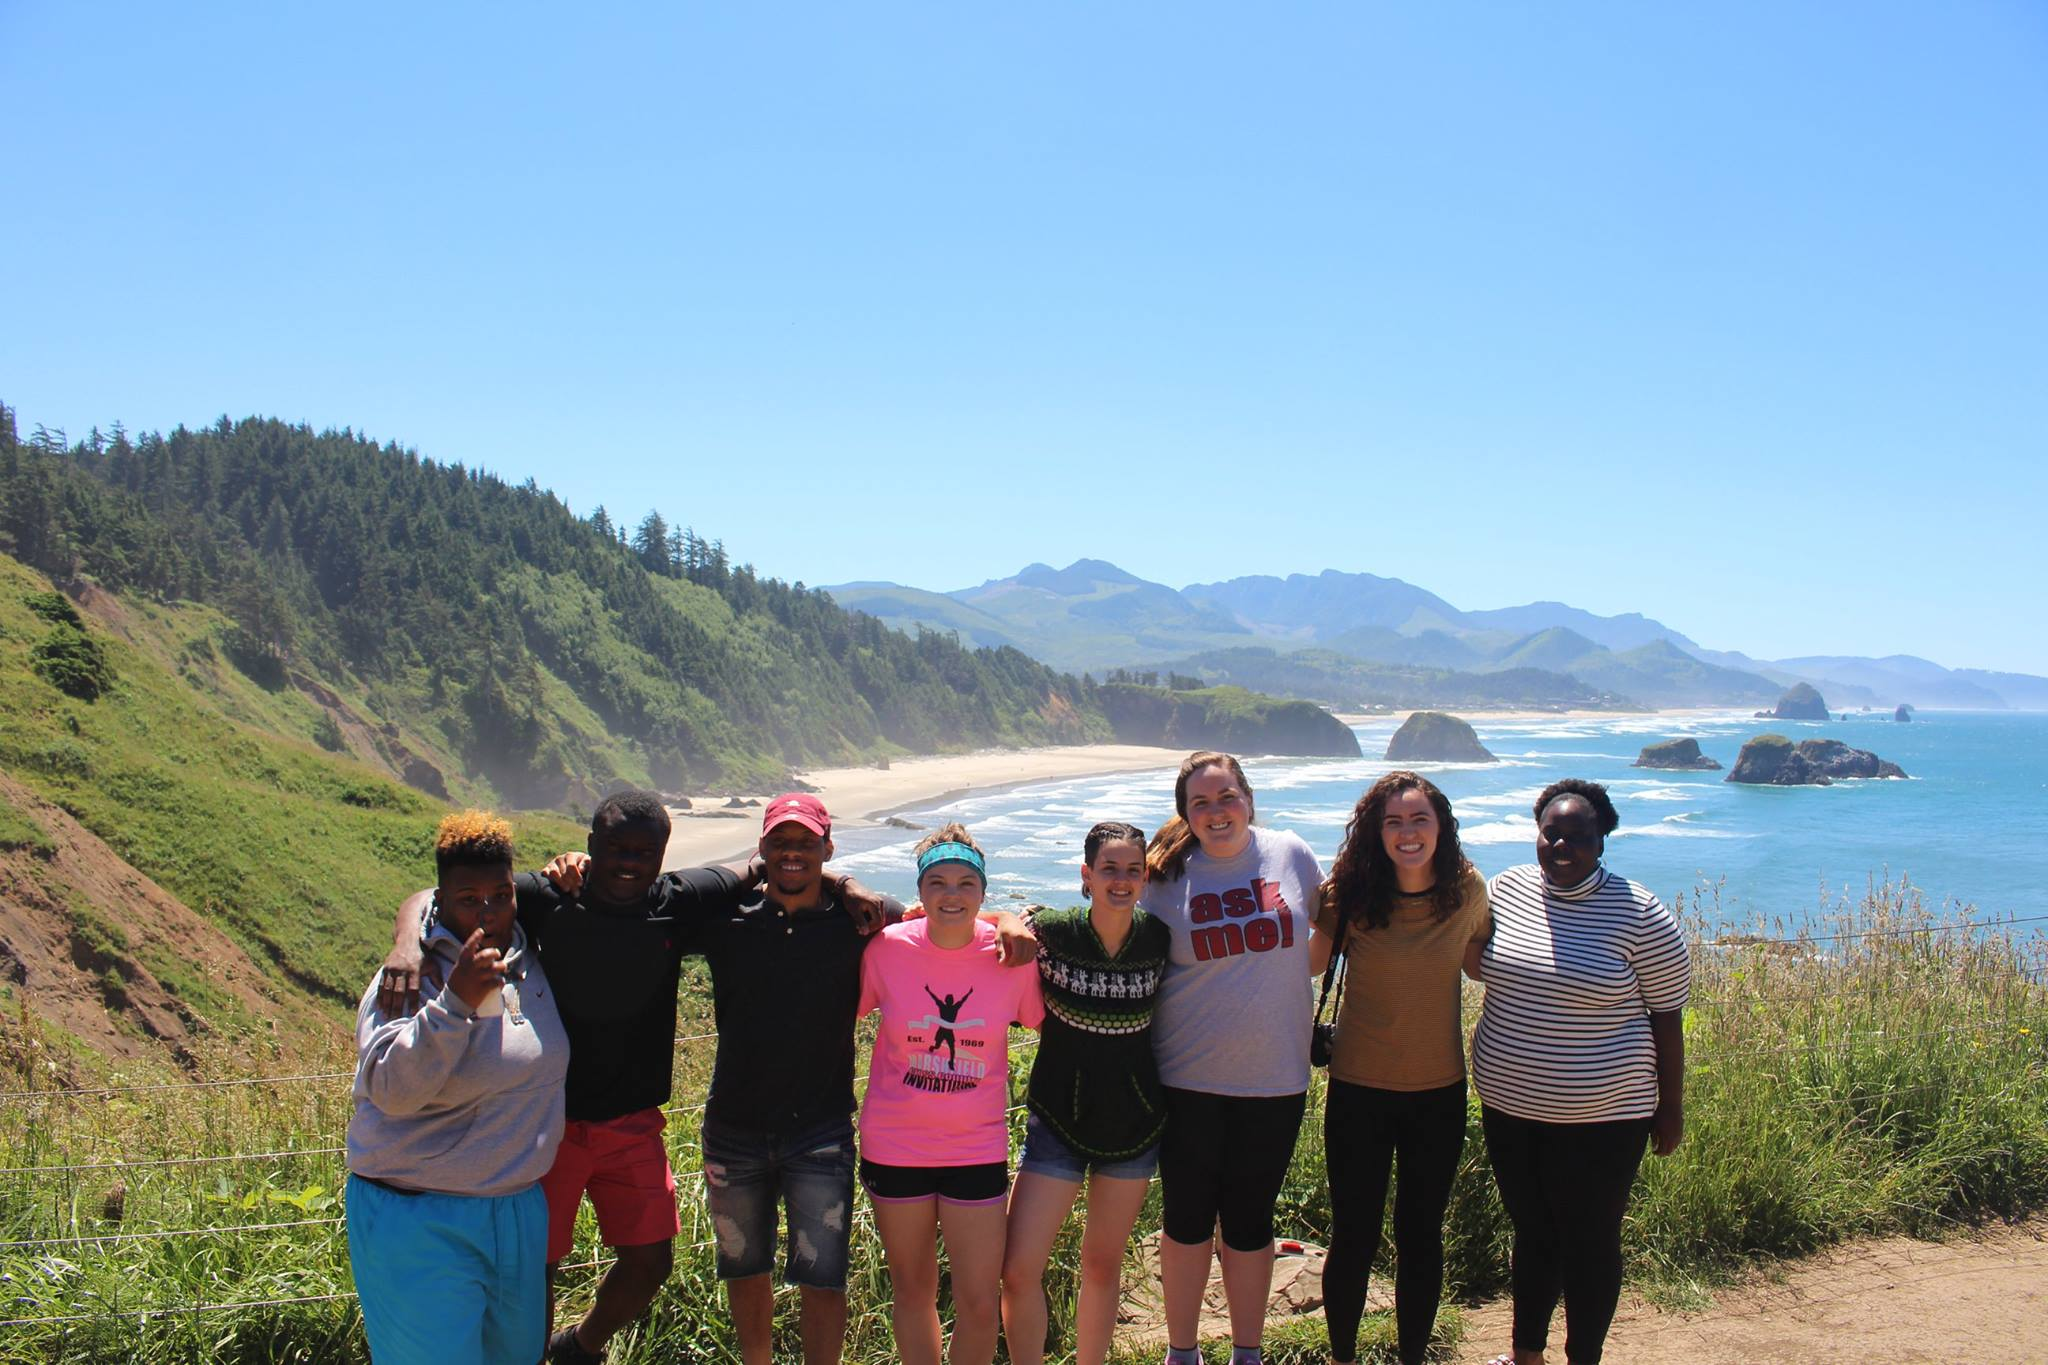 QuadW-Portland-interns-explore-creation-hike-learn-together